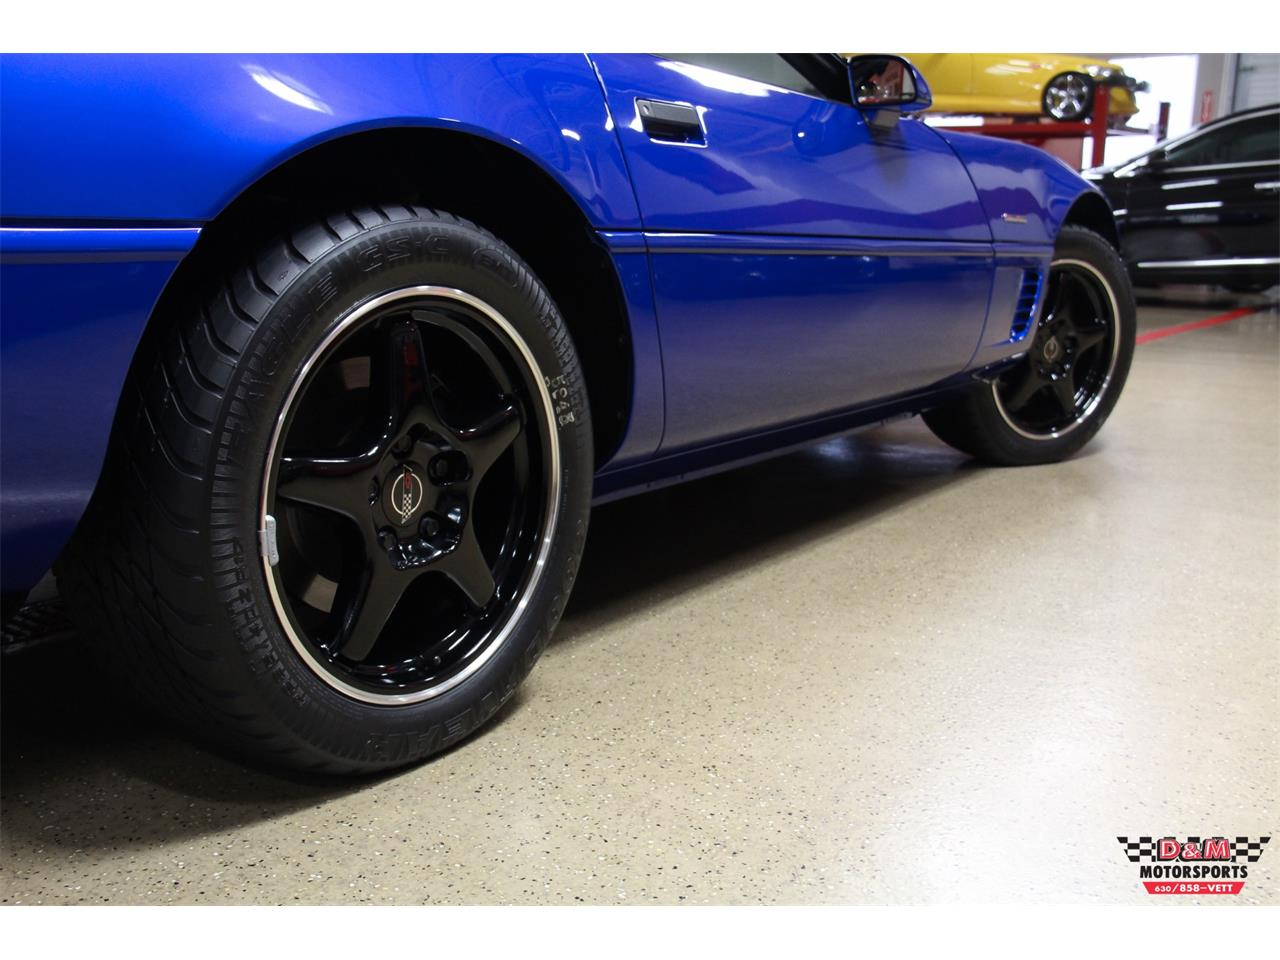 Large Picture of 1996 Chevrolet Corvette located in Glen Ellyn Illinois Offered by D & M Motorsports - LV9Z